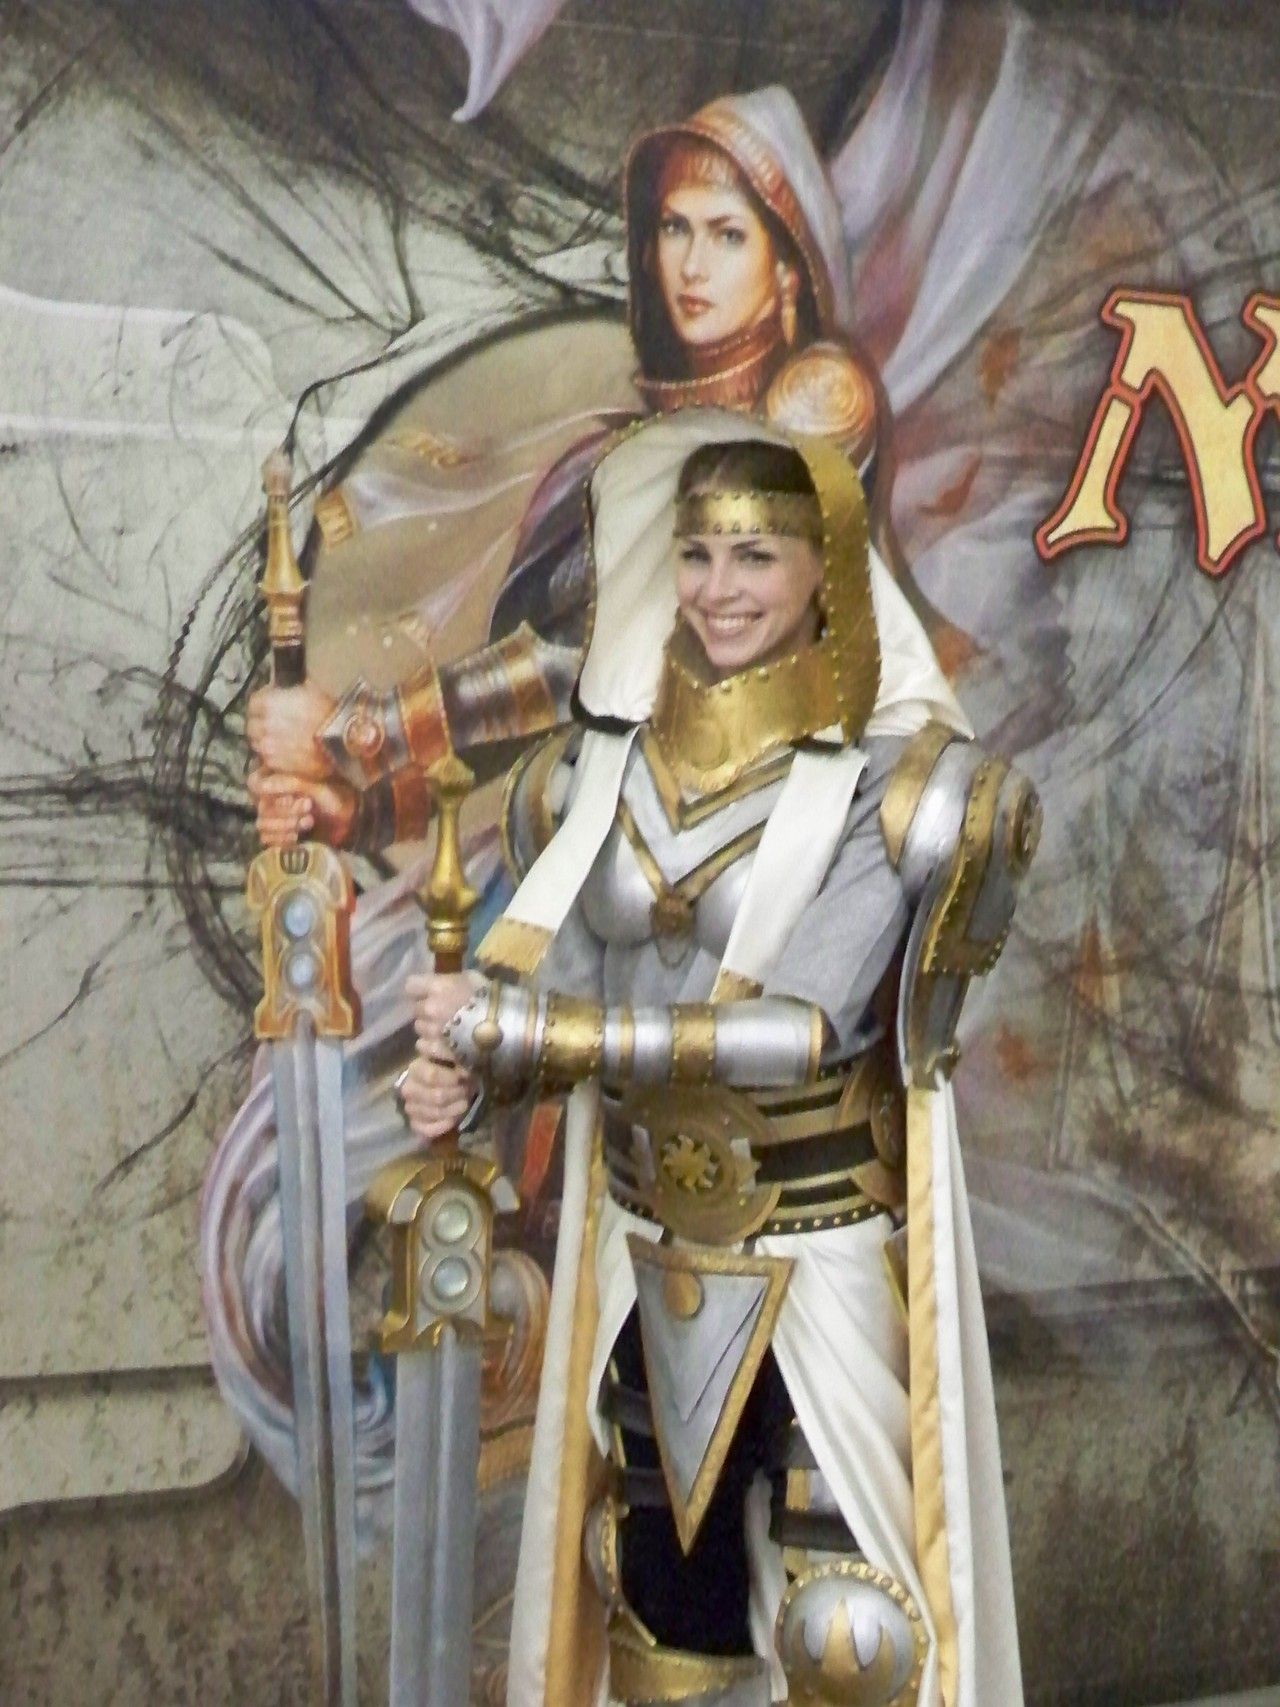 Amazing Elspeth, Knight-Errant cosplay!